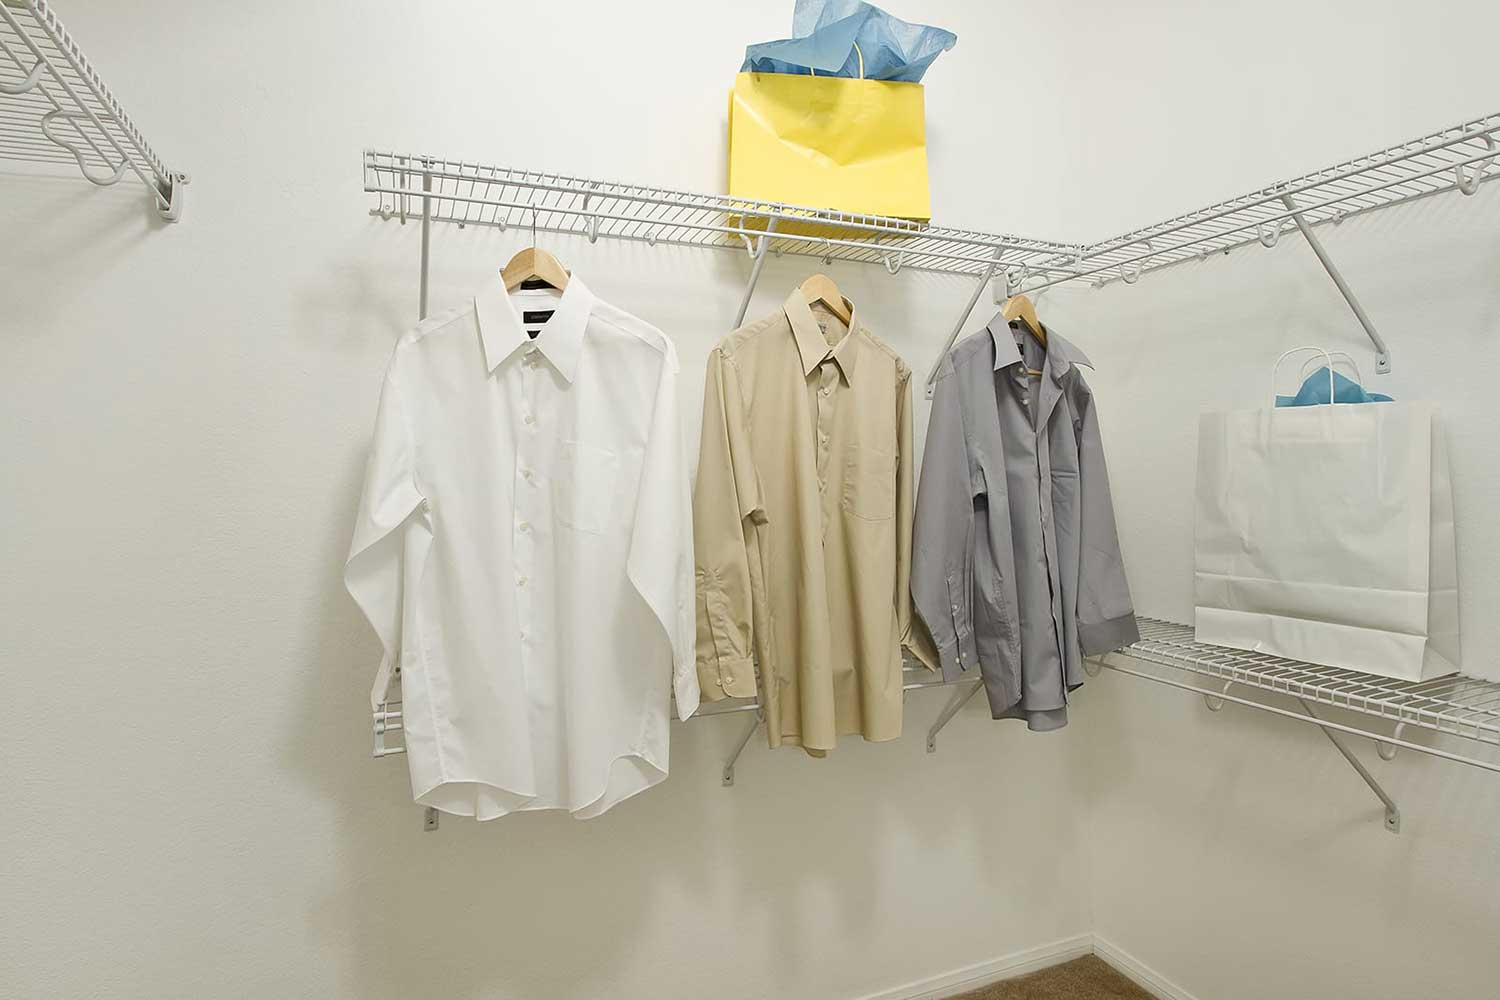 A spacious closets with a variety of shirts hanging from a closet rod and shopping bags placed on shelves.